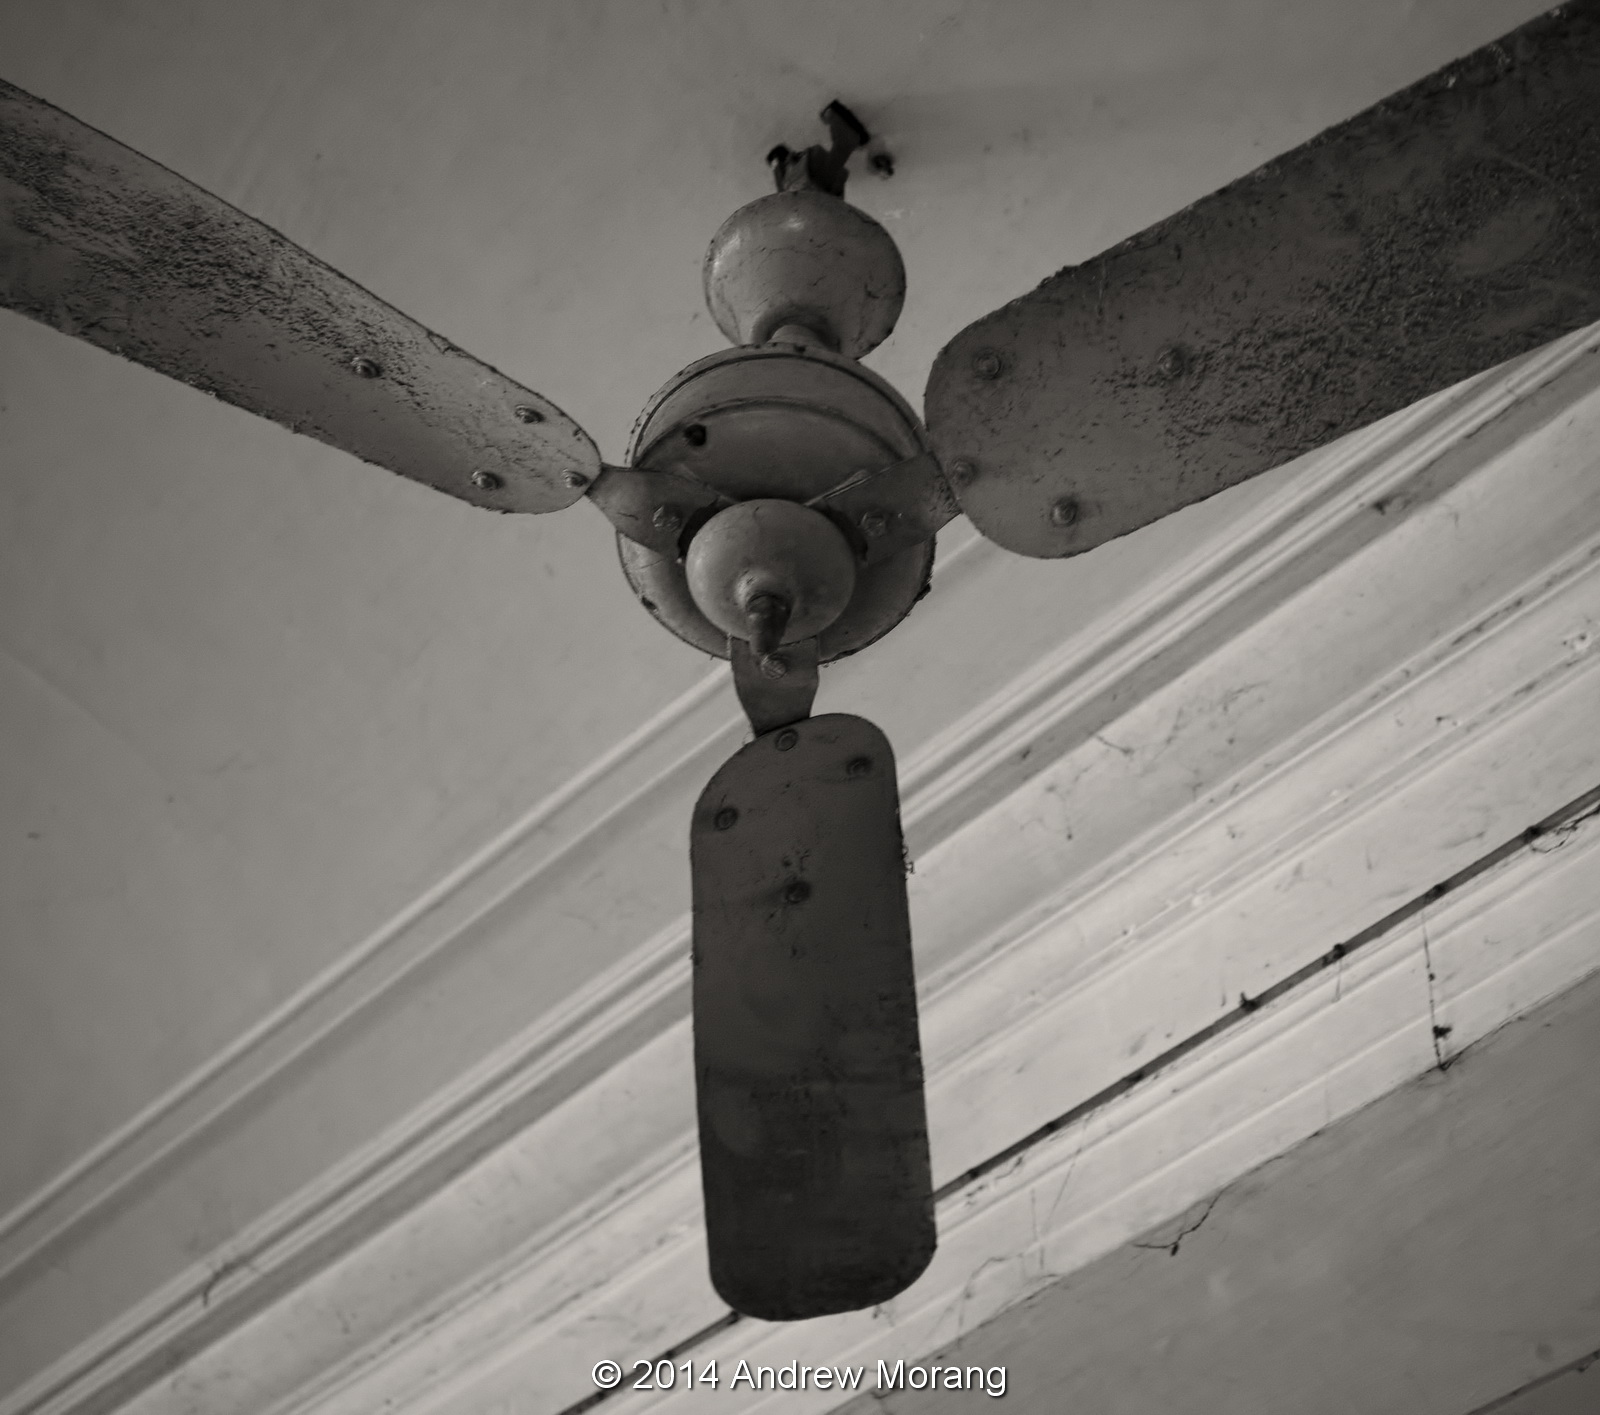 Urban decay november 2014 i assume the fans were added long after original construction electric ceiling fans were invented in 1882 in the united states and spread around the world aloadofball Images